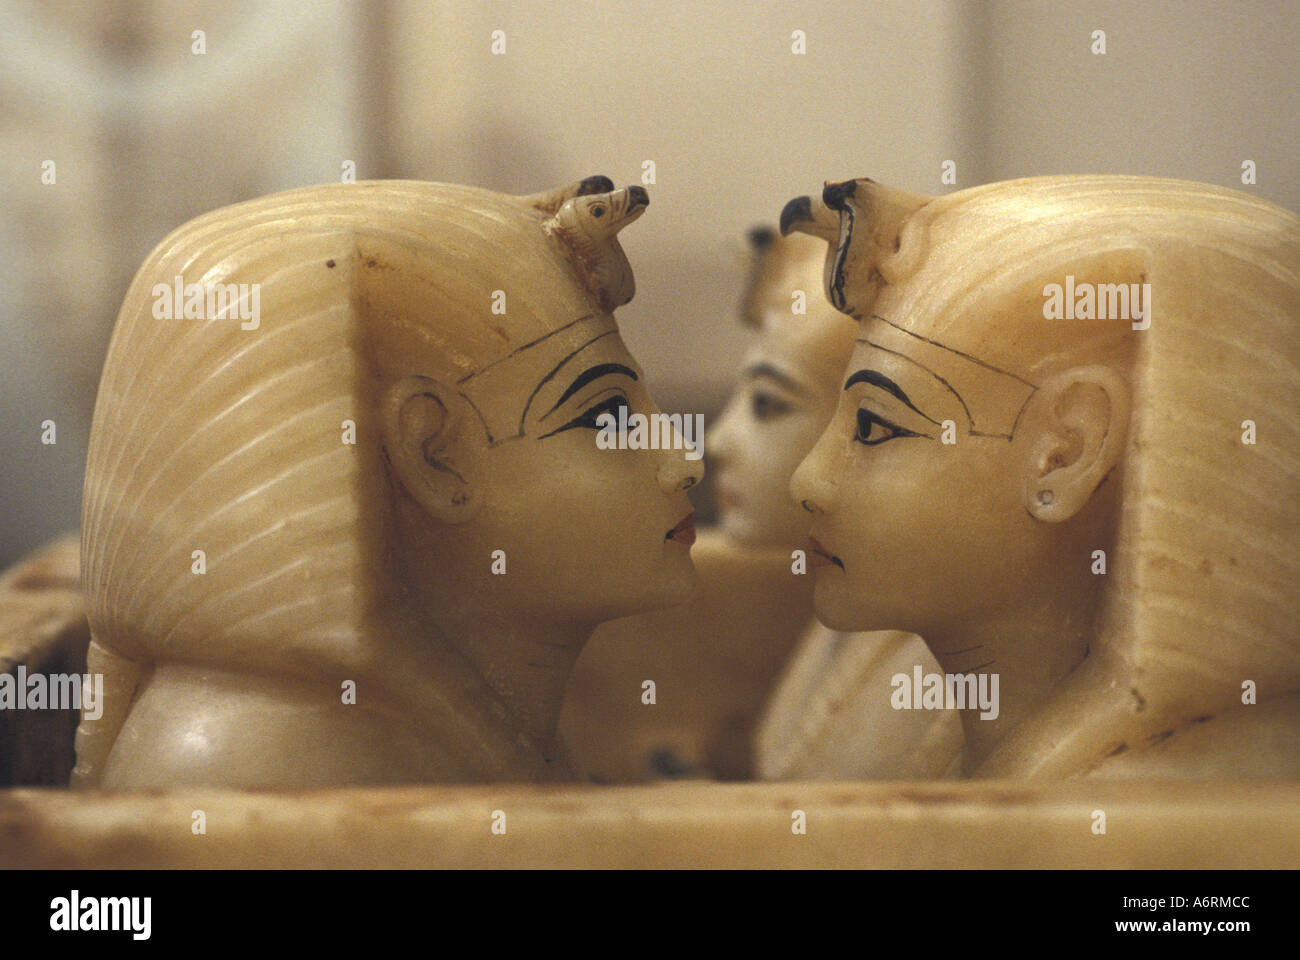 Africa, Egypt, Cairo. Egyptian Antiquities Museum. Alabaster Tut top canopic jars, hold his internal organs - Stock Image